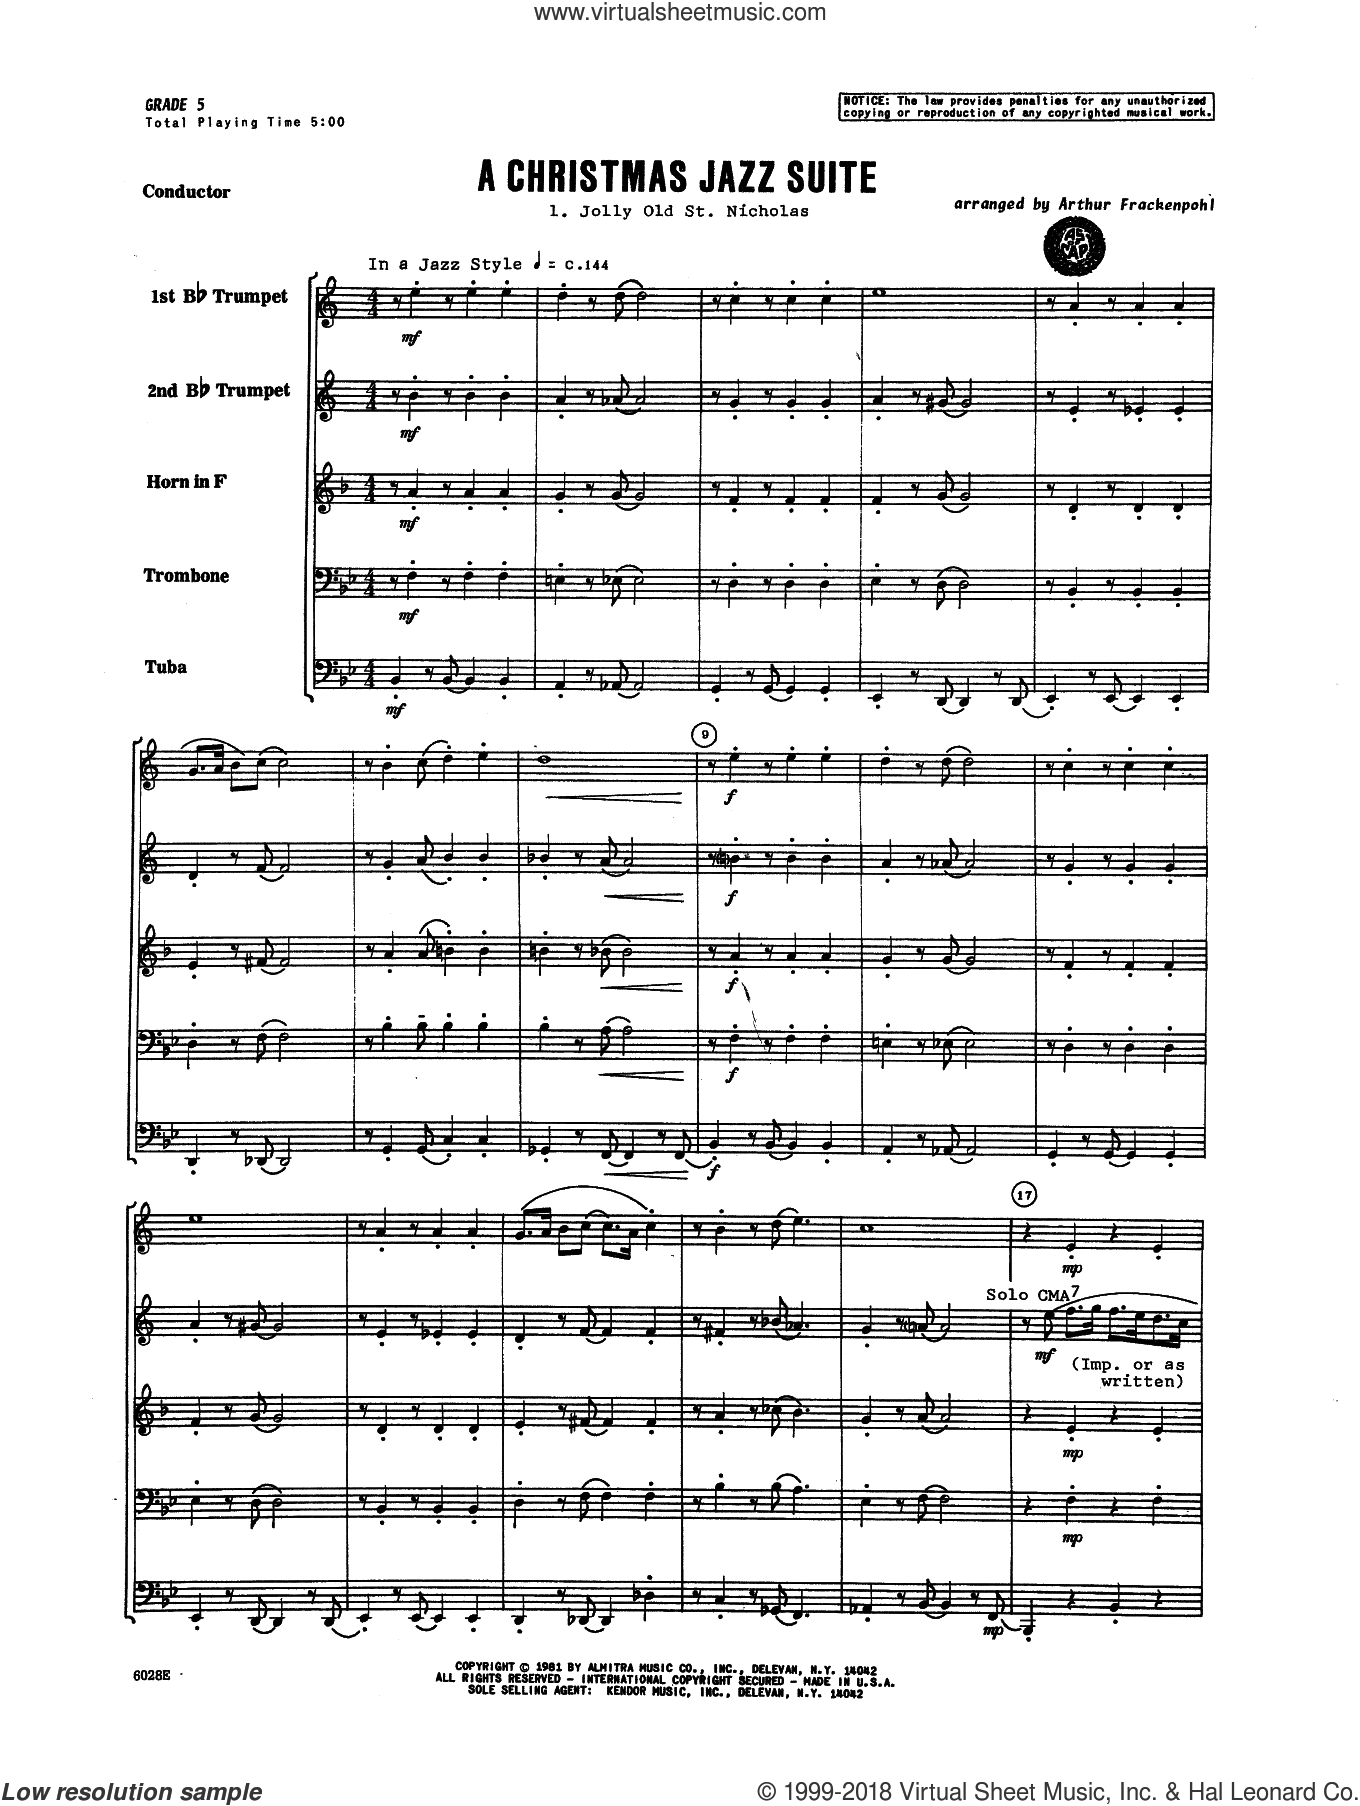 Christmas Jazz Suite (COMPLETE) sheet music for brass quintet by Arthur Frackenpohl and Miscellaneous, intermediate skill level